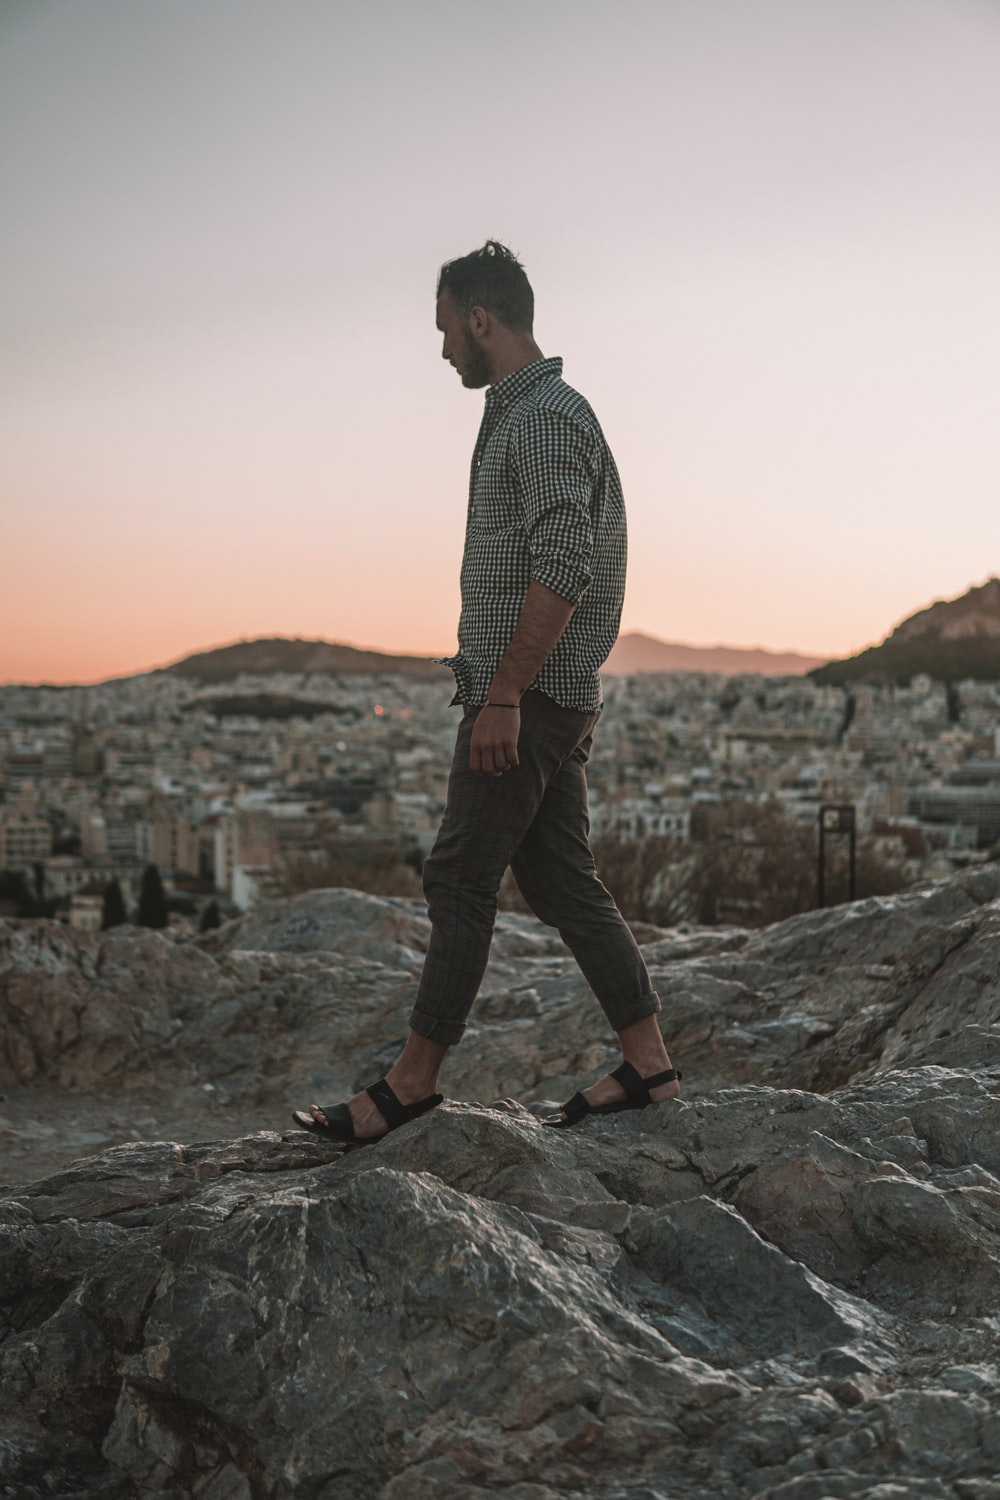 man walking on the rocky field photography